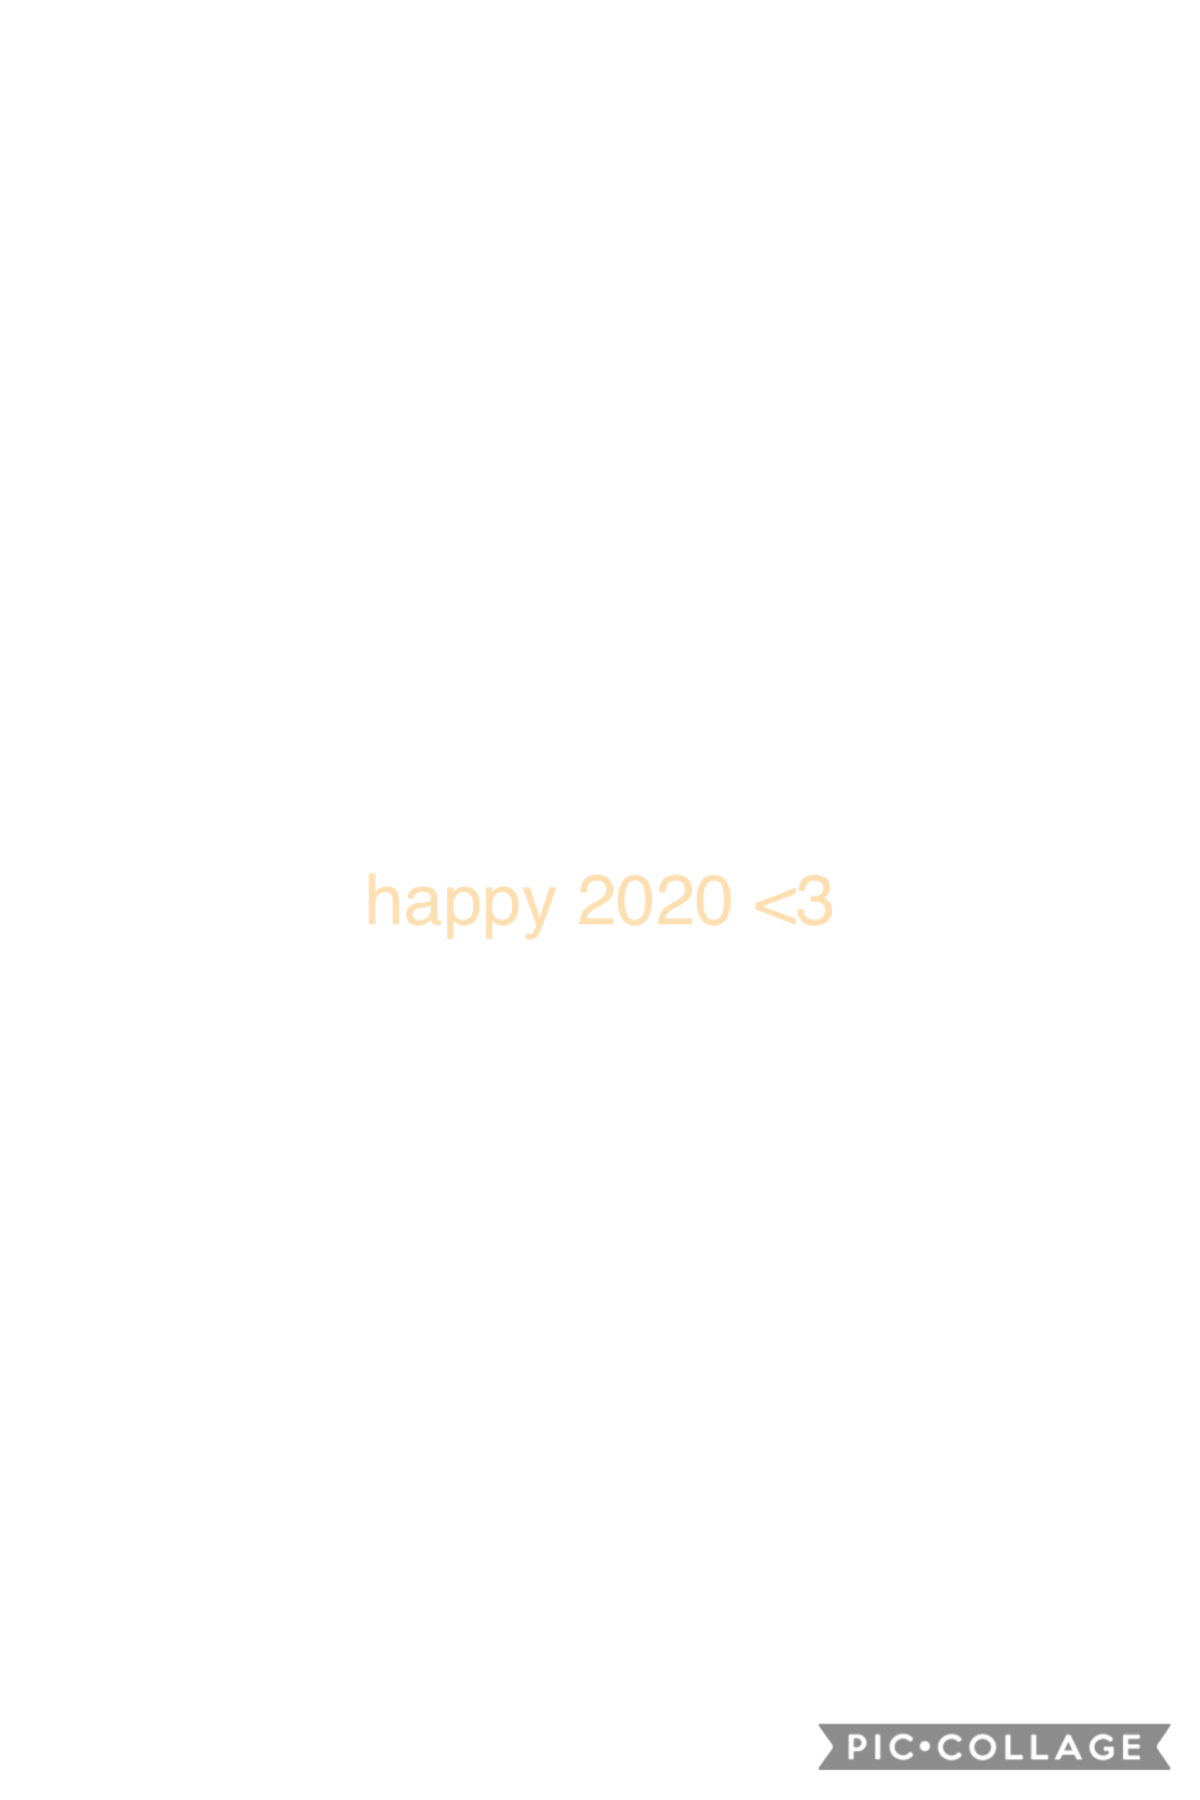 click  I'm a little late but happy 2020!💗😁